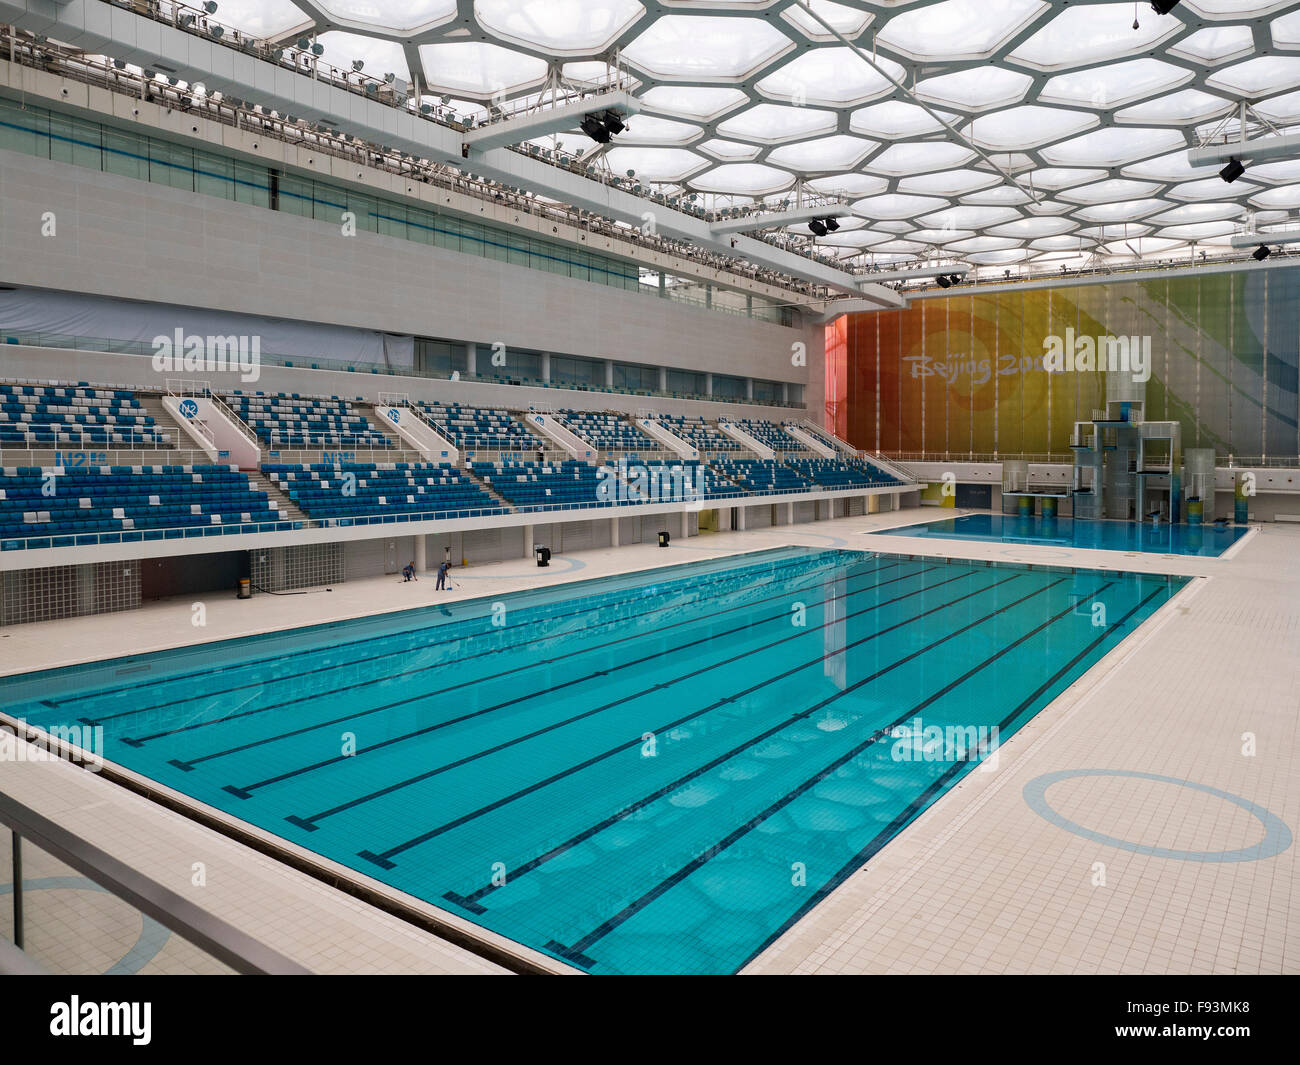 Chinese Indoor Swimming Pool Stock Photos & Chinese Indoor Swimming ...